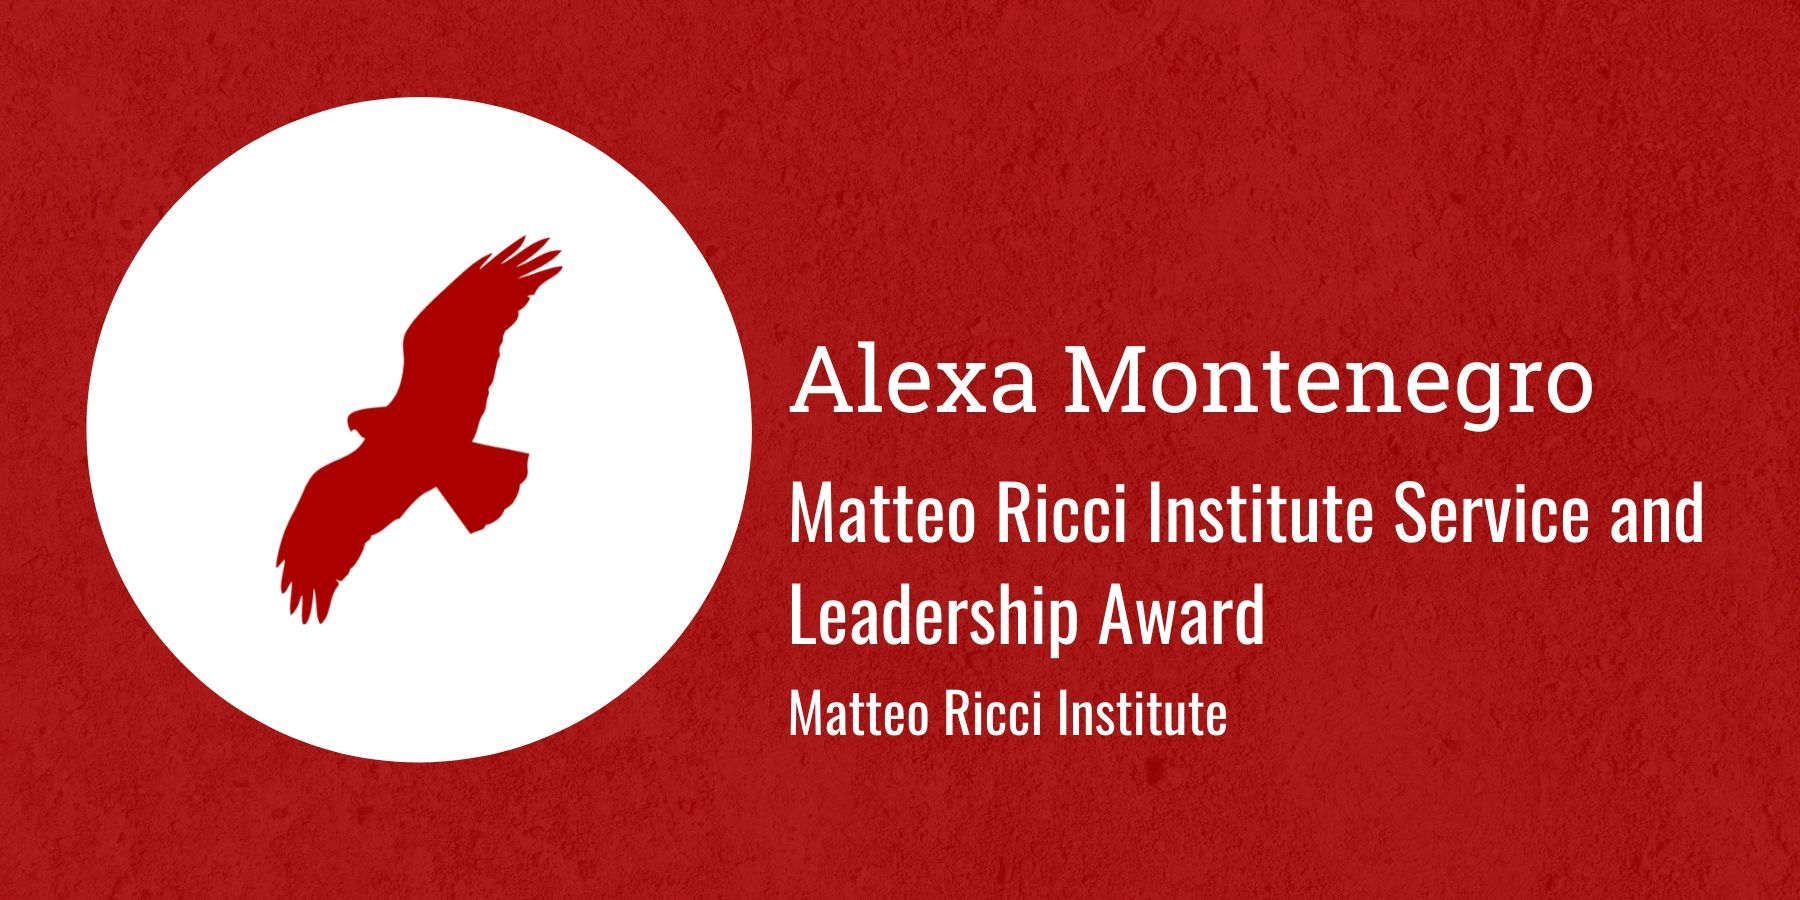 Image of Redhawk and Text: Matteo Ricci Institute Service and Leadership Award